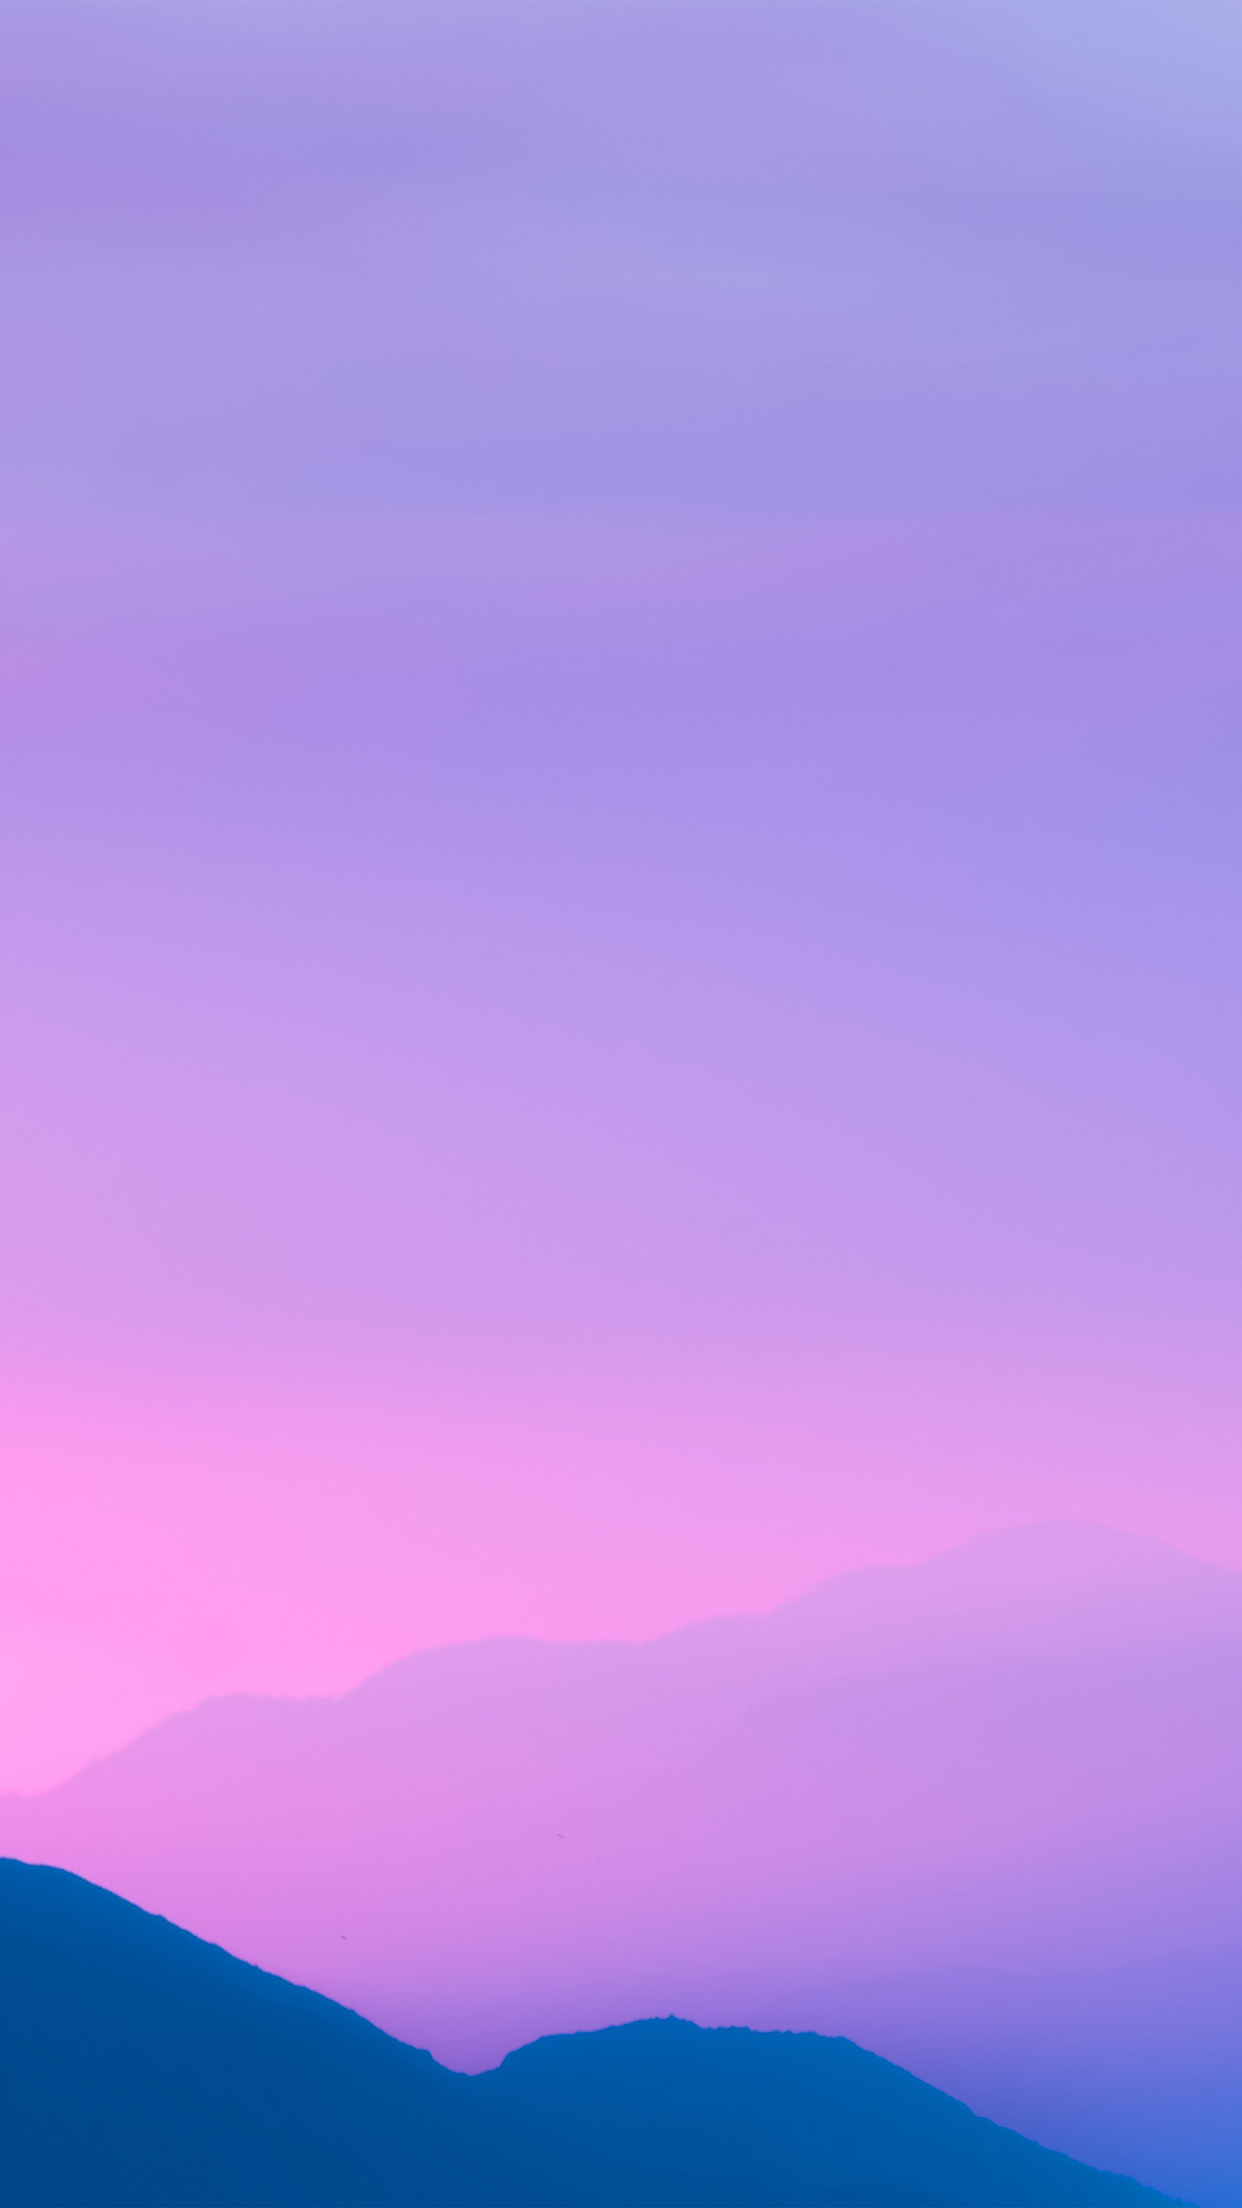 Iphone7papers Com Iphone7 Wallpaper Nz11 Sky Purple Sunset Nature Blur